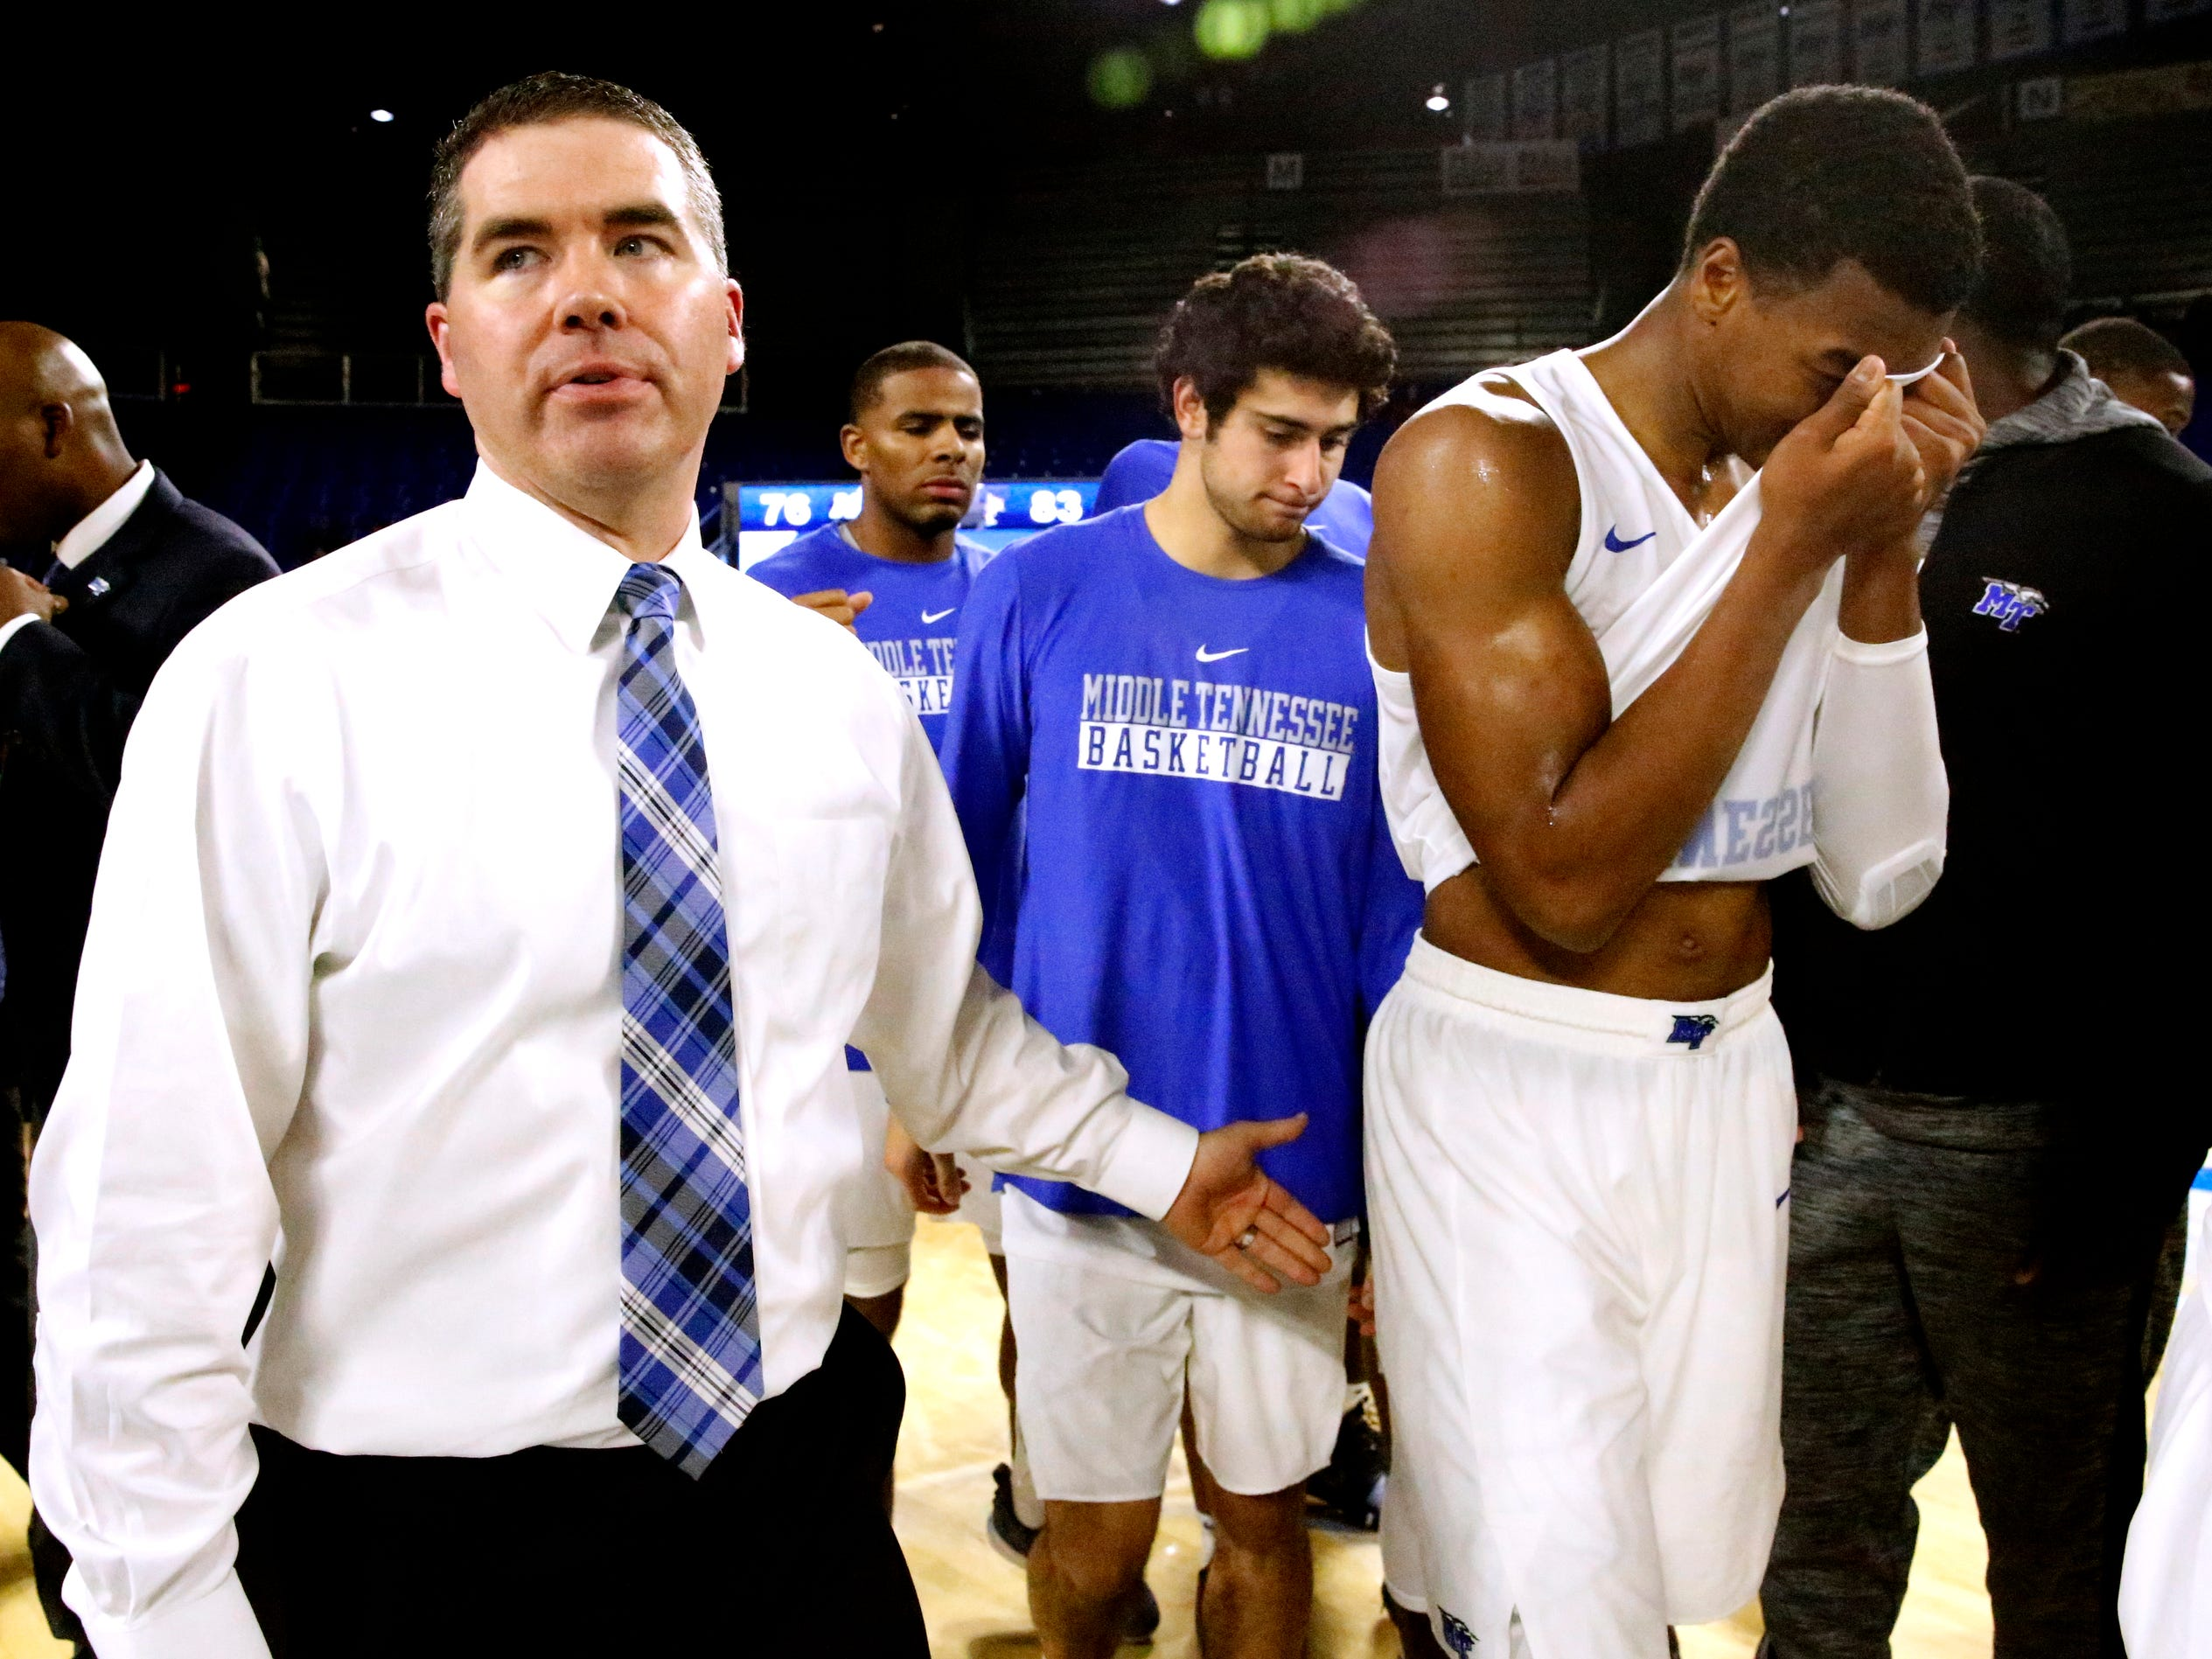 MTSU's head coach Nick McDevitt meets with his team on the court after the lost to FIU 83-76, which was the team's 10th loss in a row on Thursday Jan. 3, 2019, at MTSU. MTSU's guard Jayce Johnson (10) wipes hi face after the game.